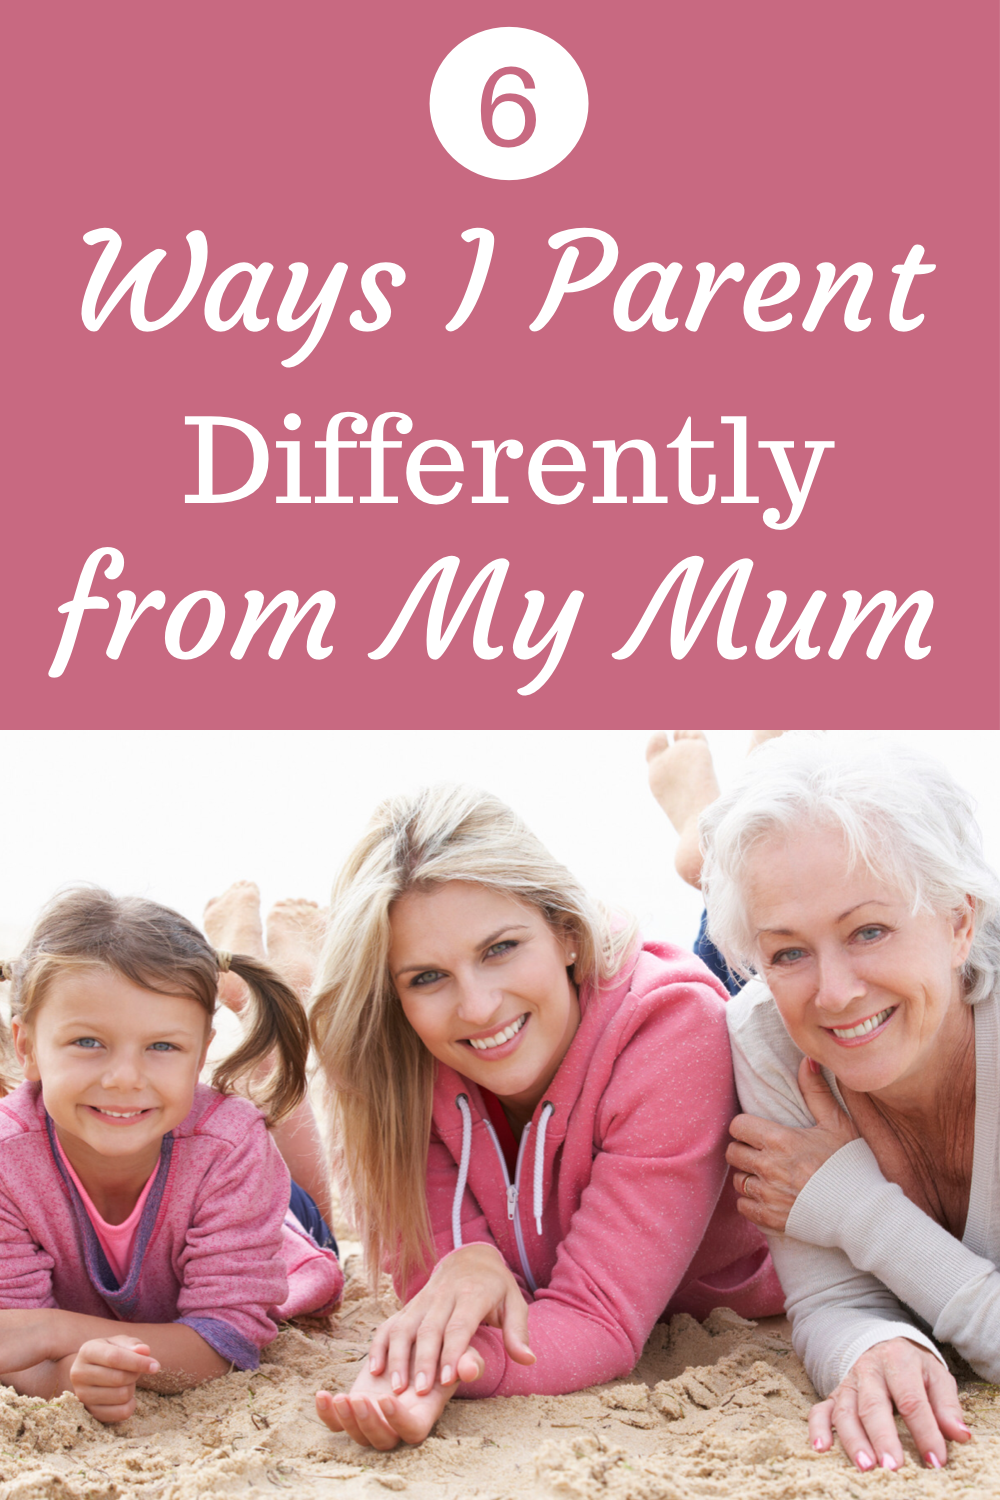 5 ways I parent differently from my mum